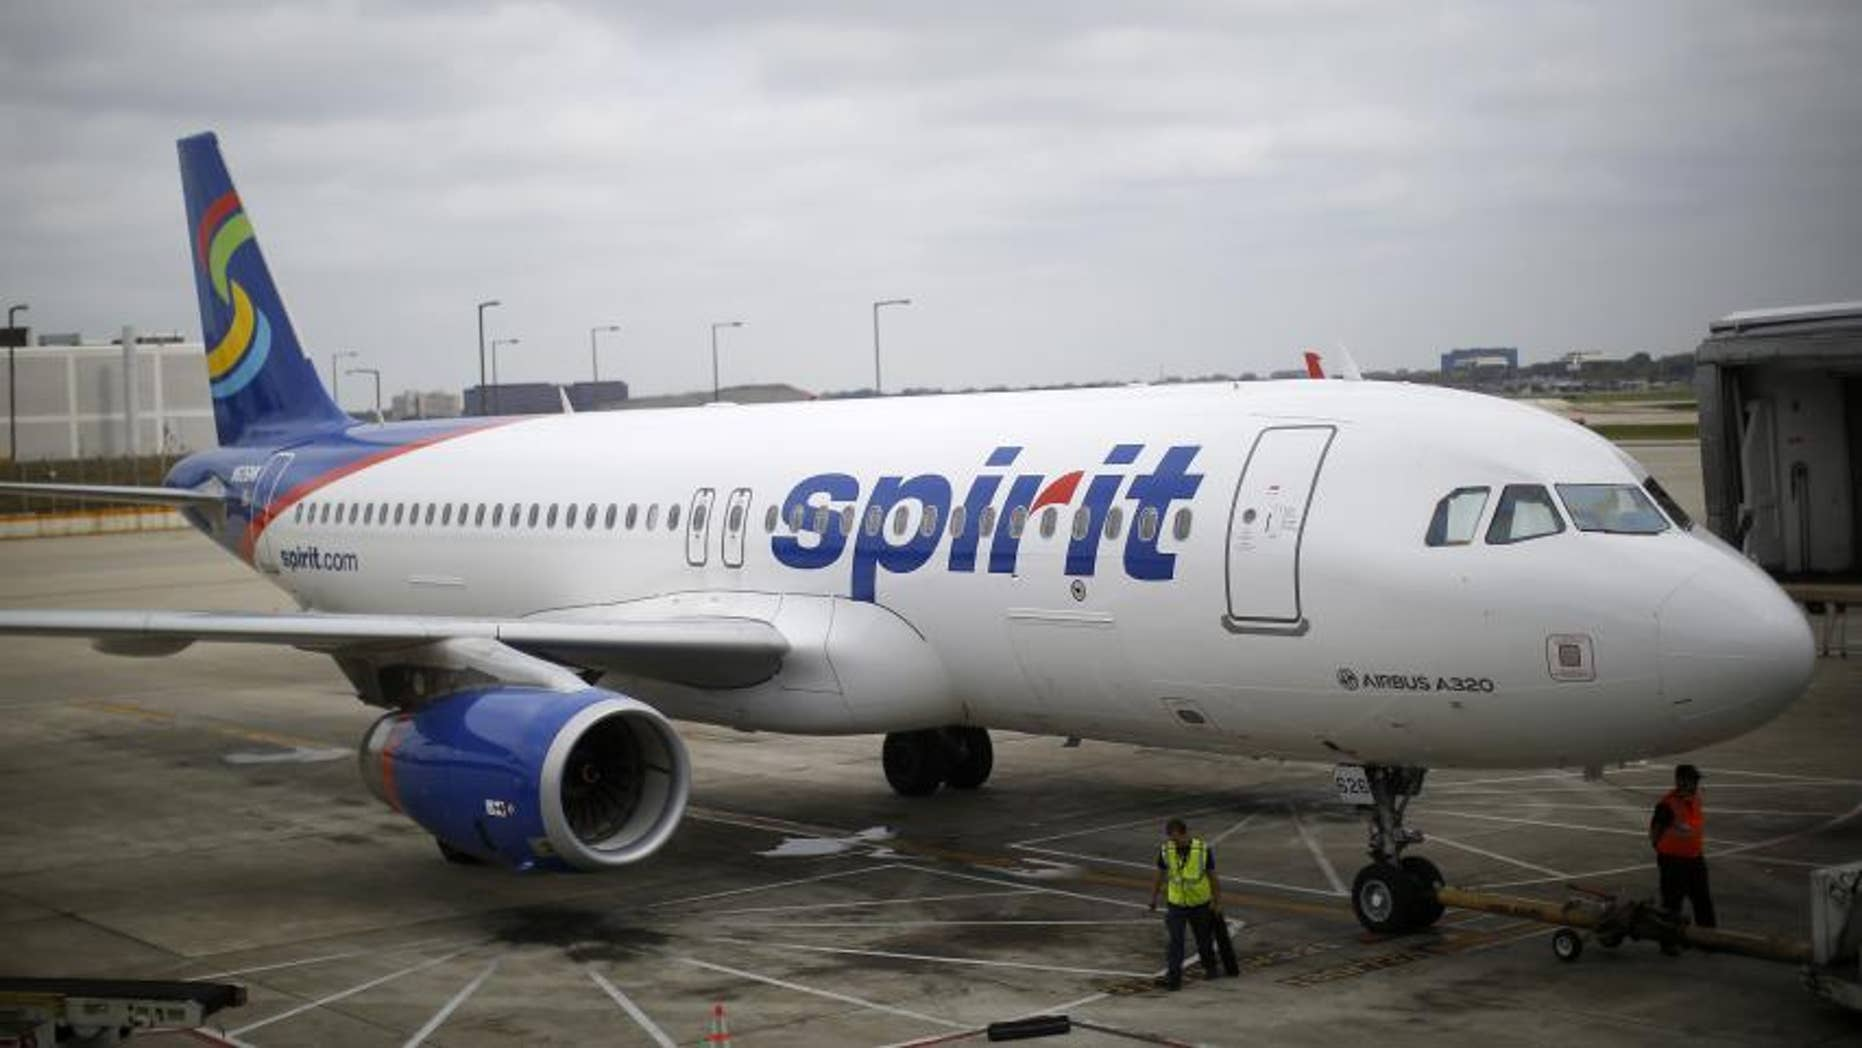 Passengers involved in an altercation that went viral are suing the airline.